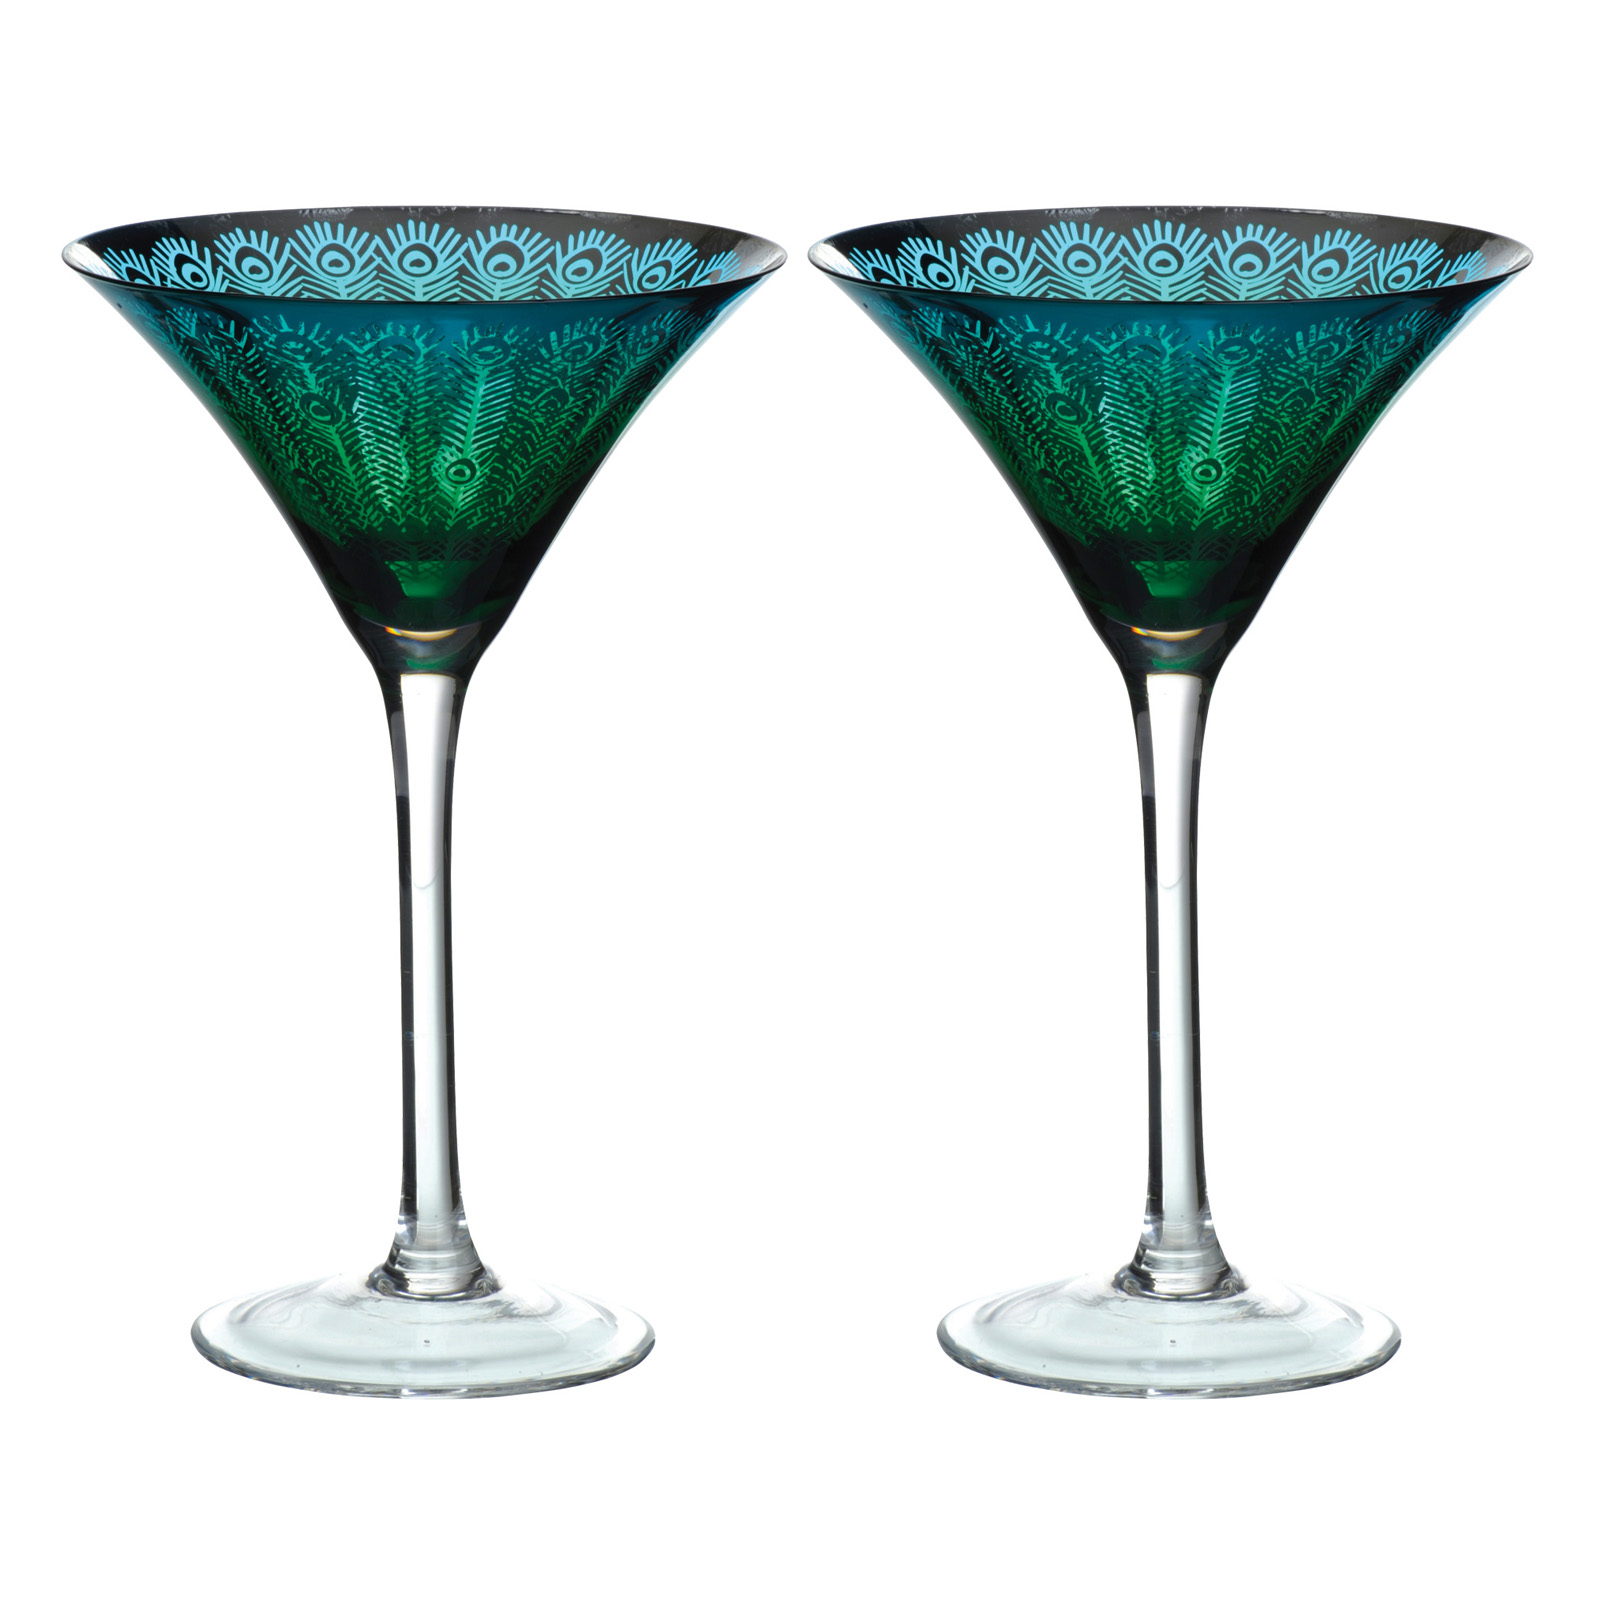 Set of 2 Peacock Martini glasses by Artland